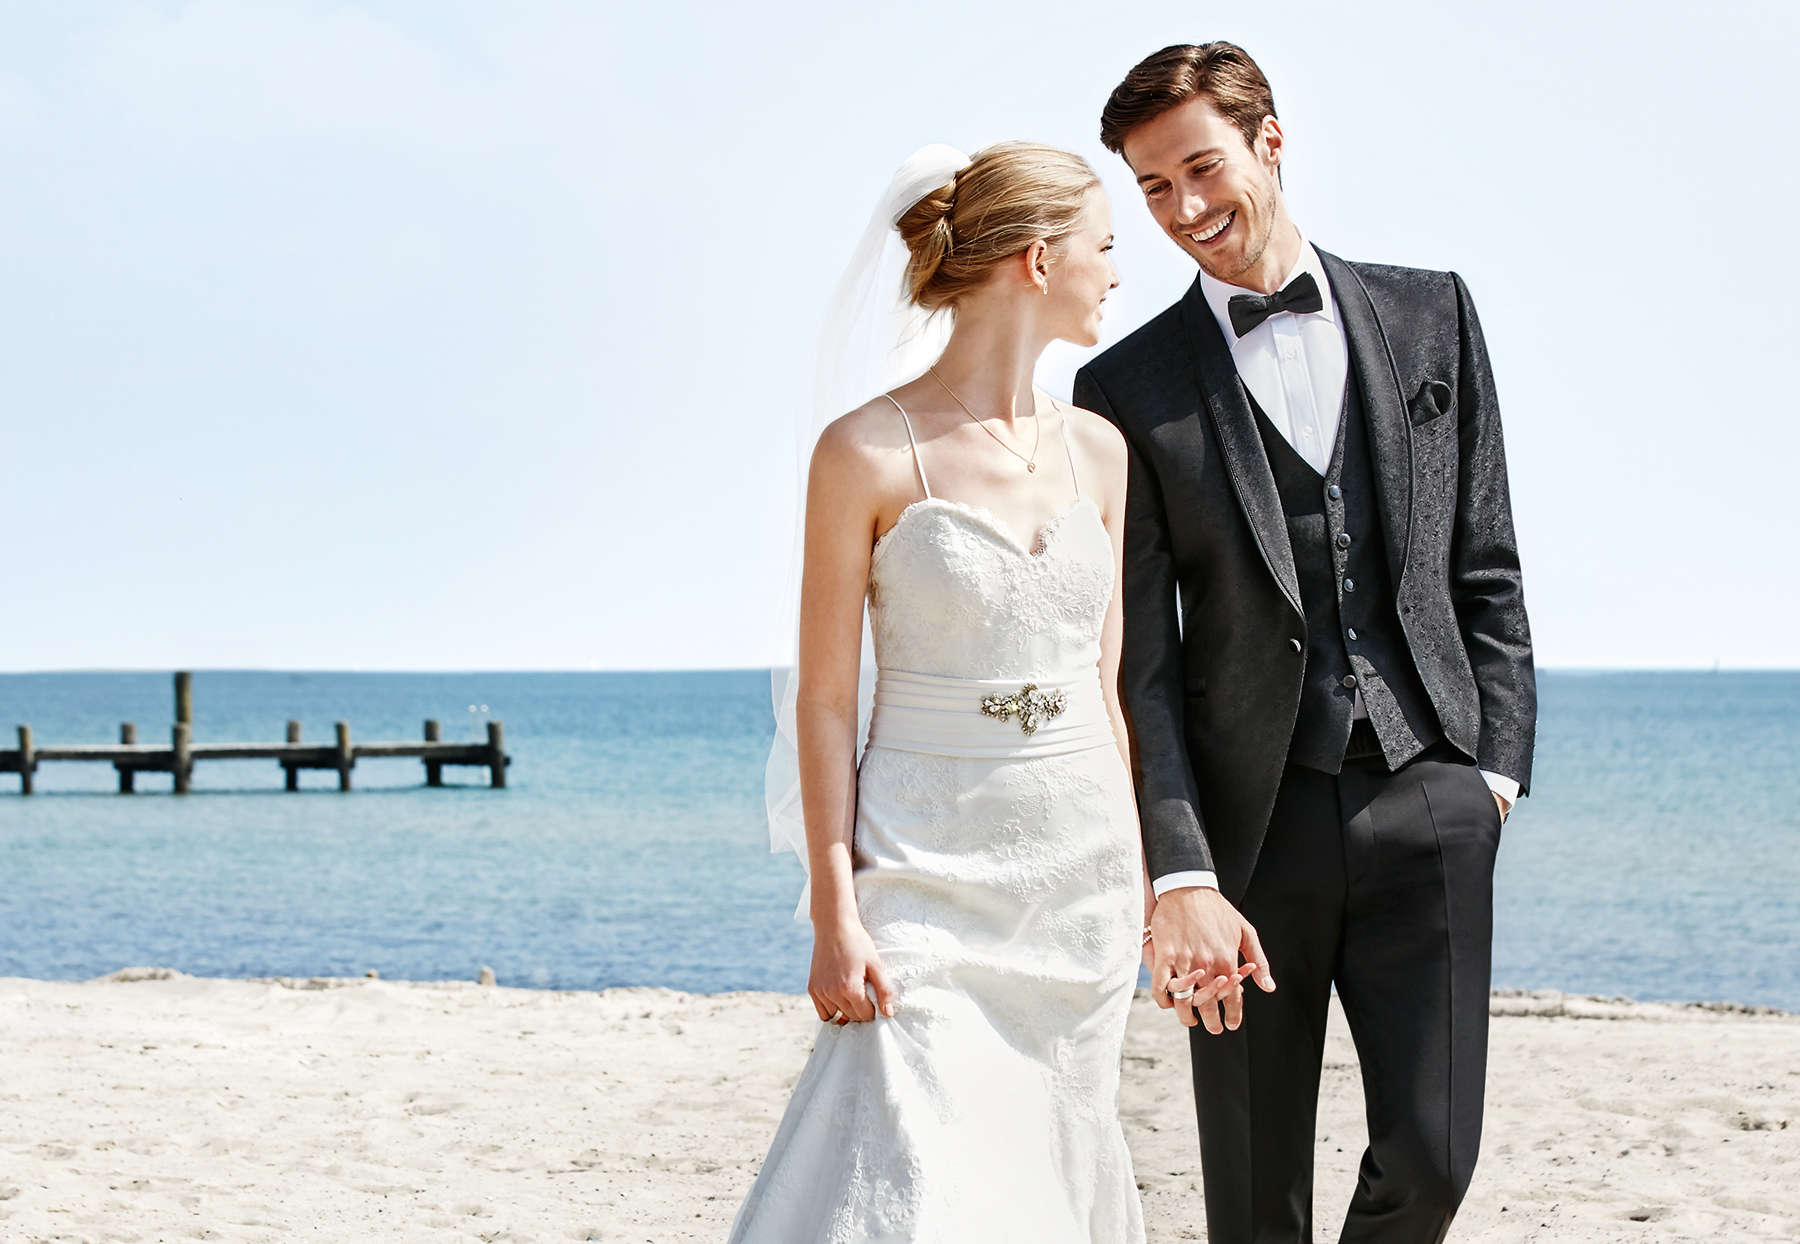 Suter & Co. - Personal Tailors - Wedding Suits in Zurich